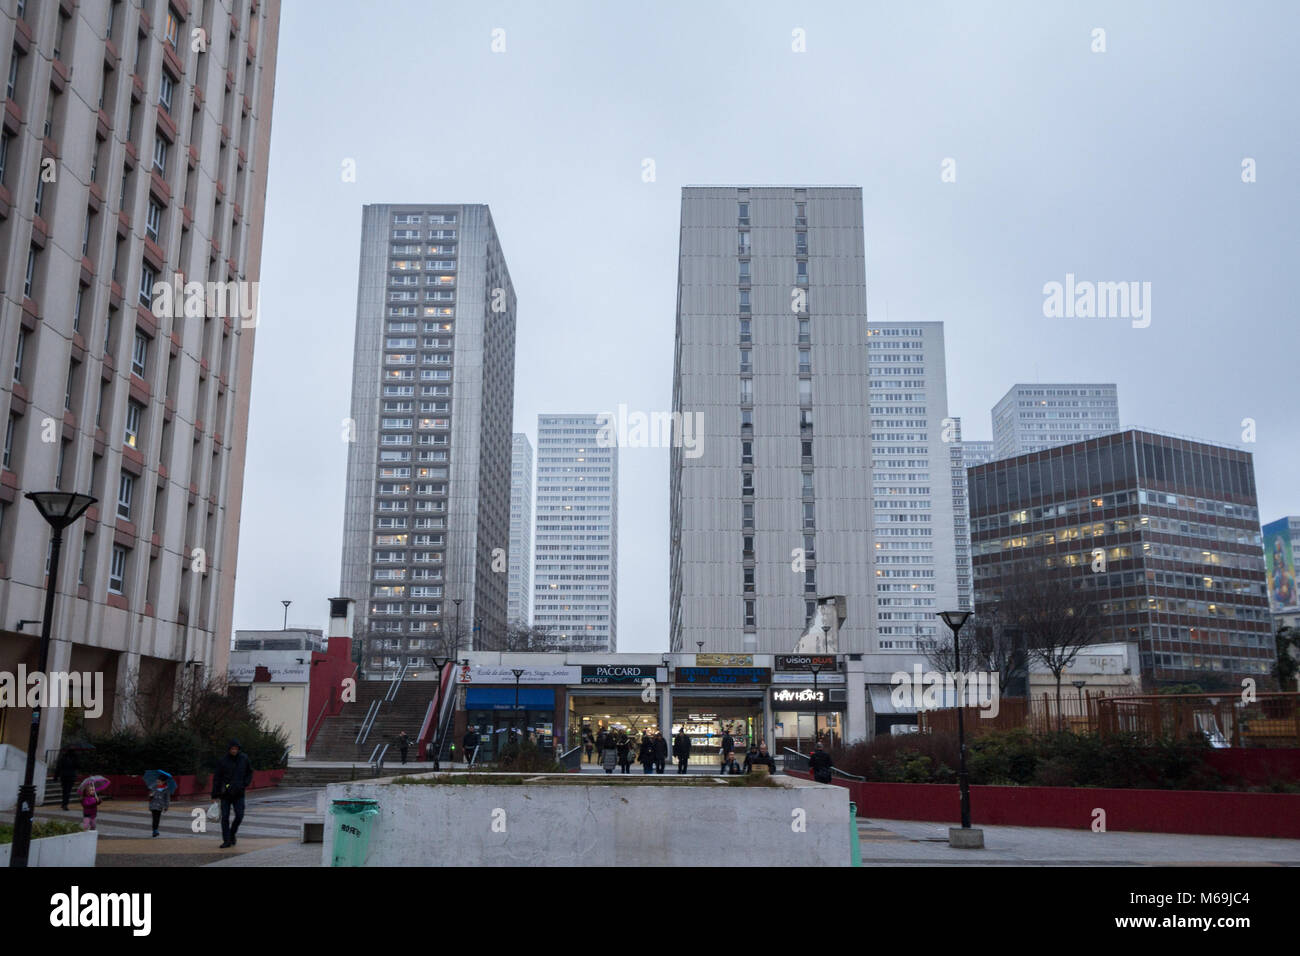 PARIS, FRANCE - DECEMBER 20, 2017: Olympiades square in the 13th arrondissement in Paris, in the Asian district, - Stock Image